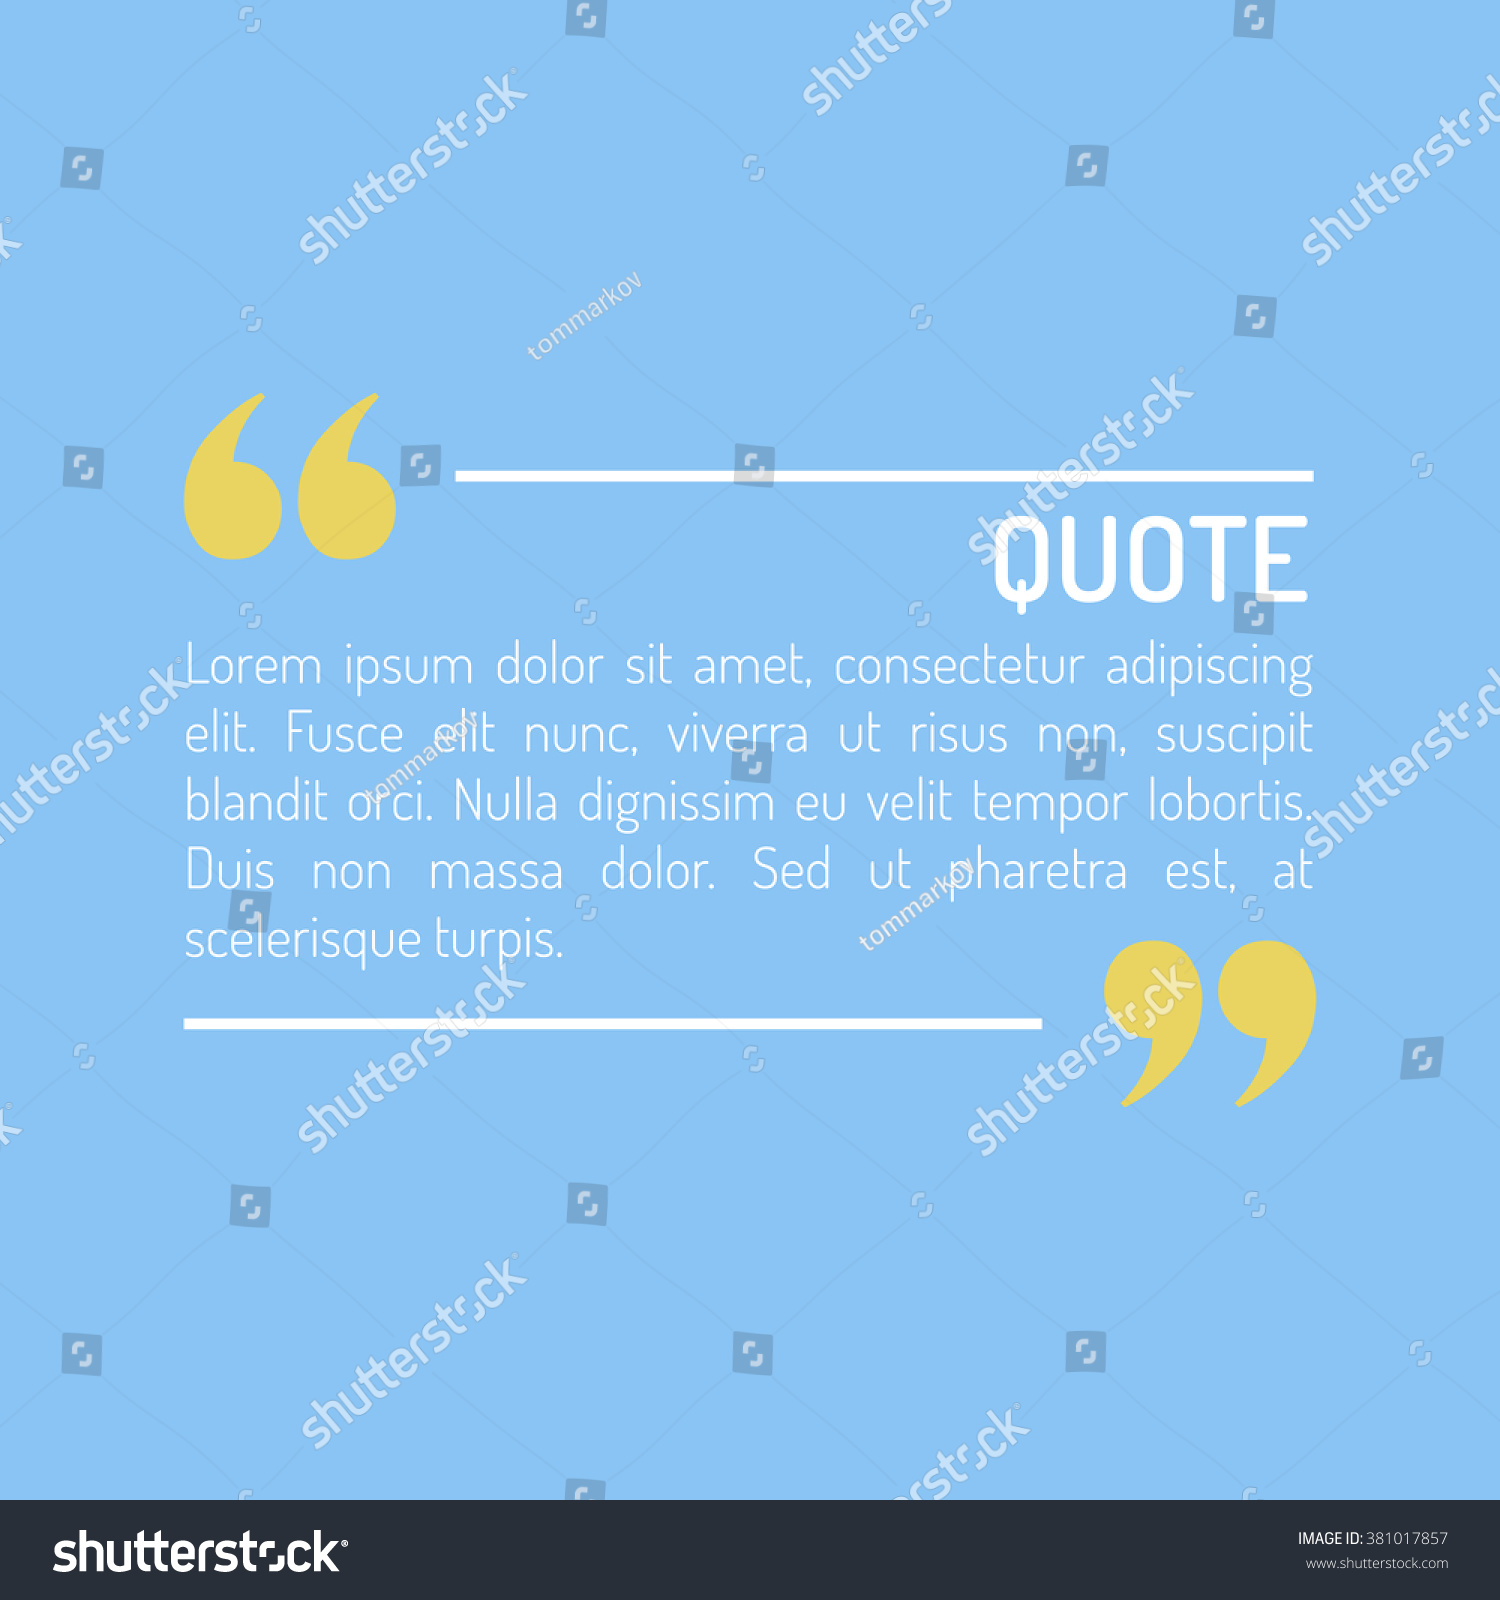 quotes template flat style colored flat stock vector  quotes template in flat style colored flat quotes vector